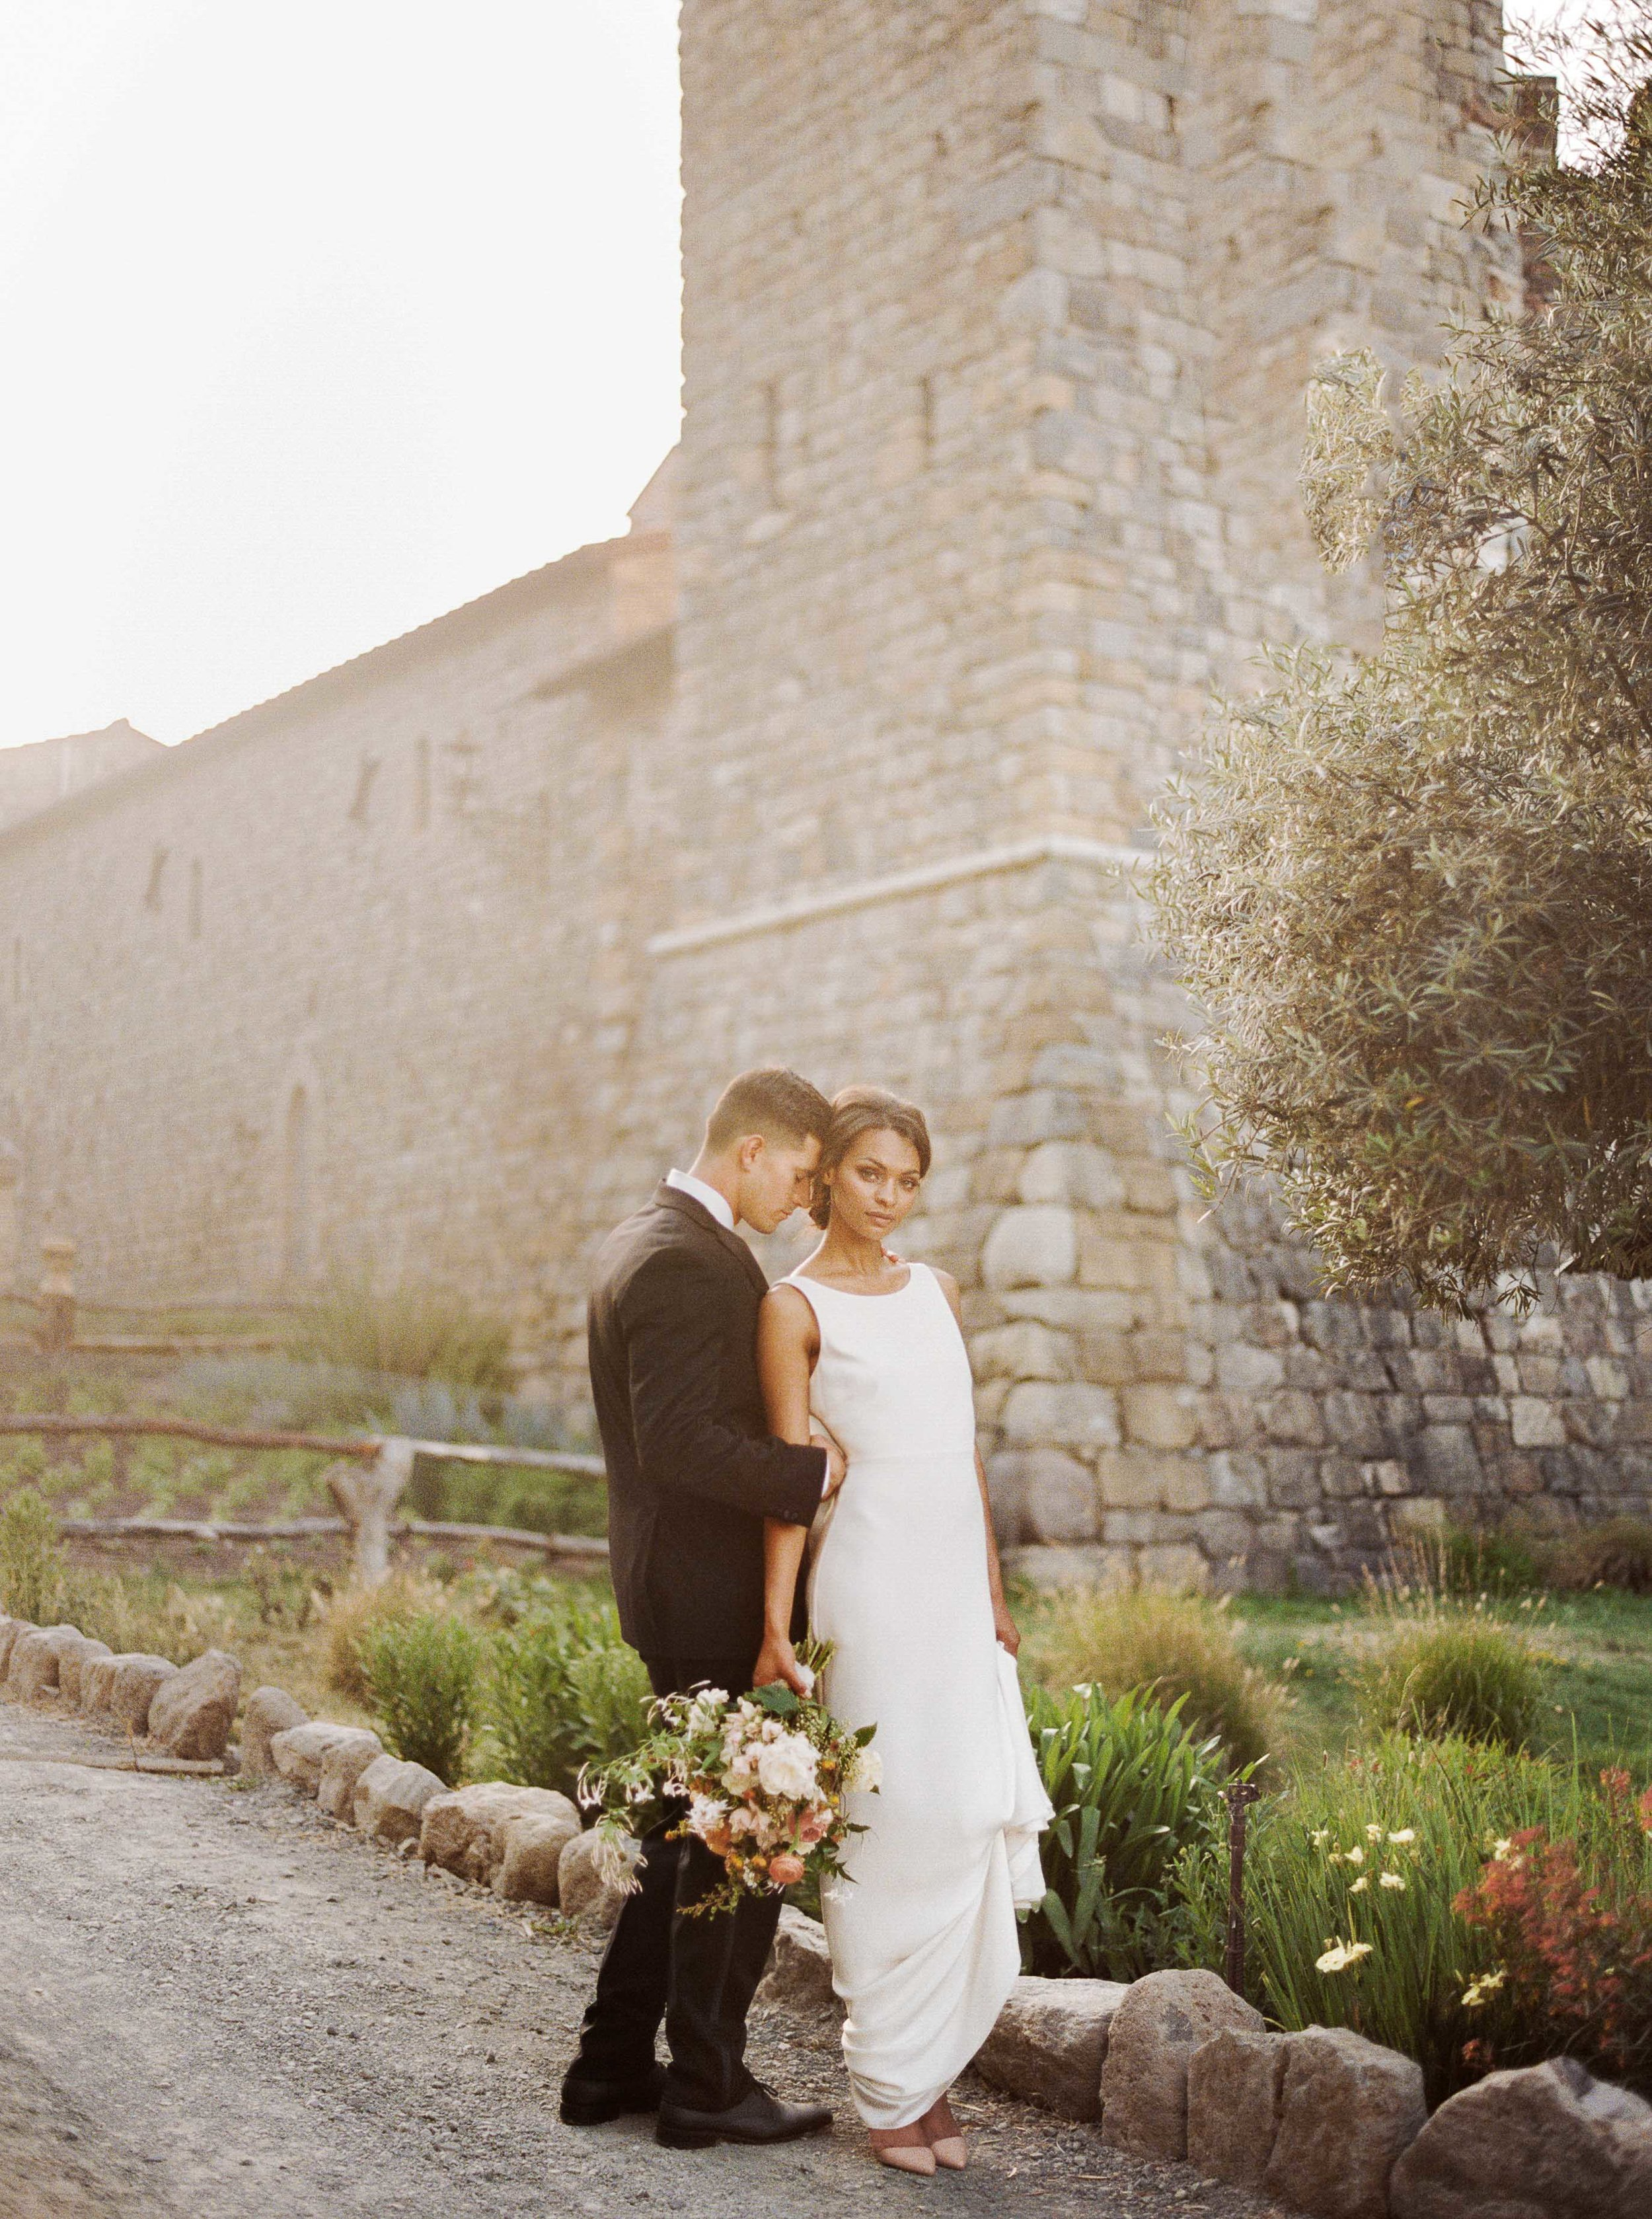 053napa_wedding_photographer_and_videographer_destination_and_elopement_photography.jpg